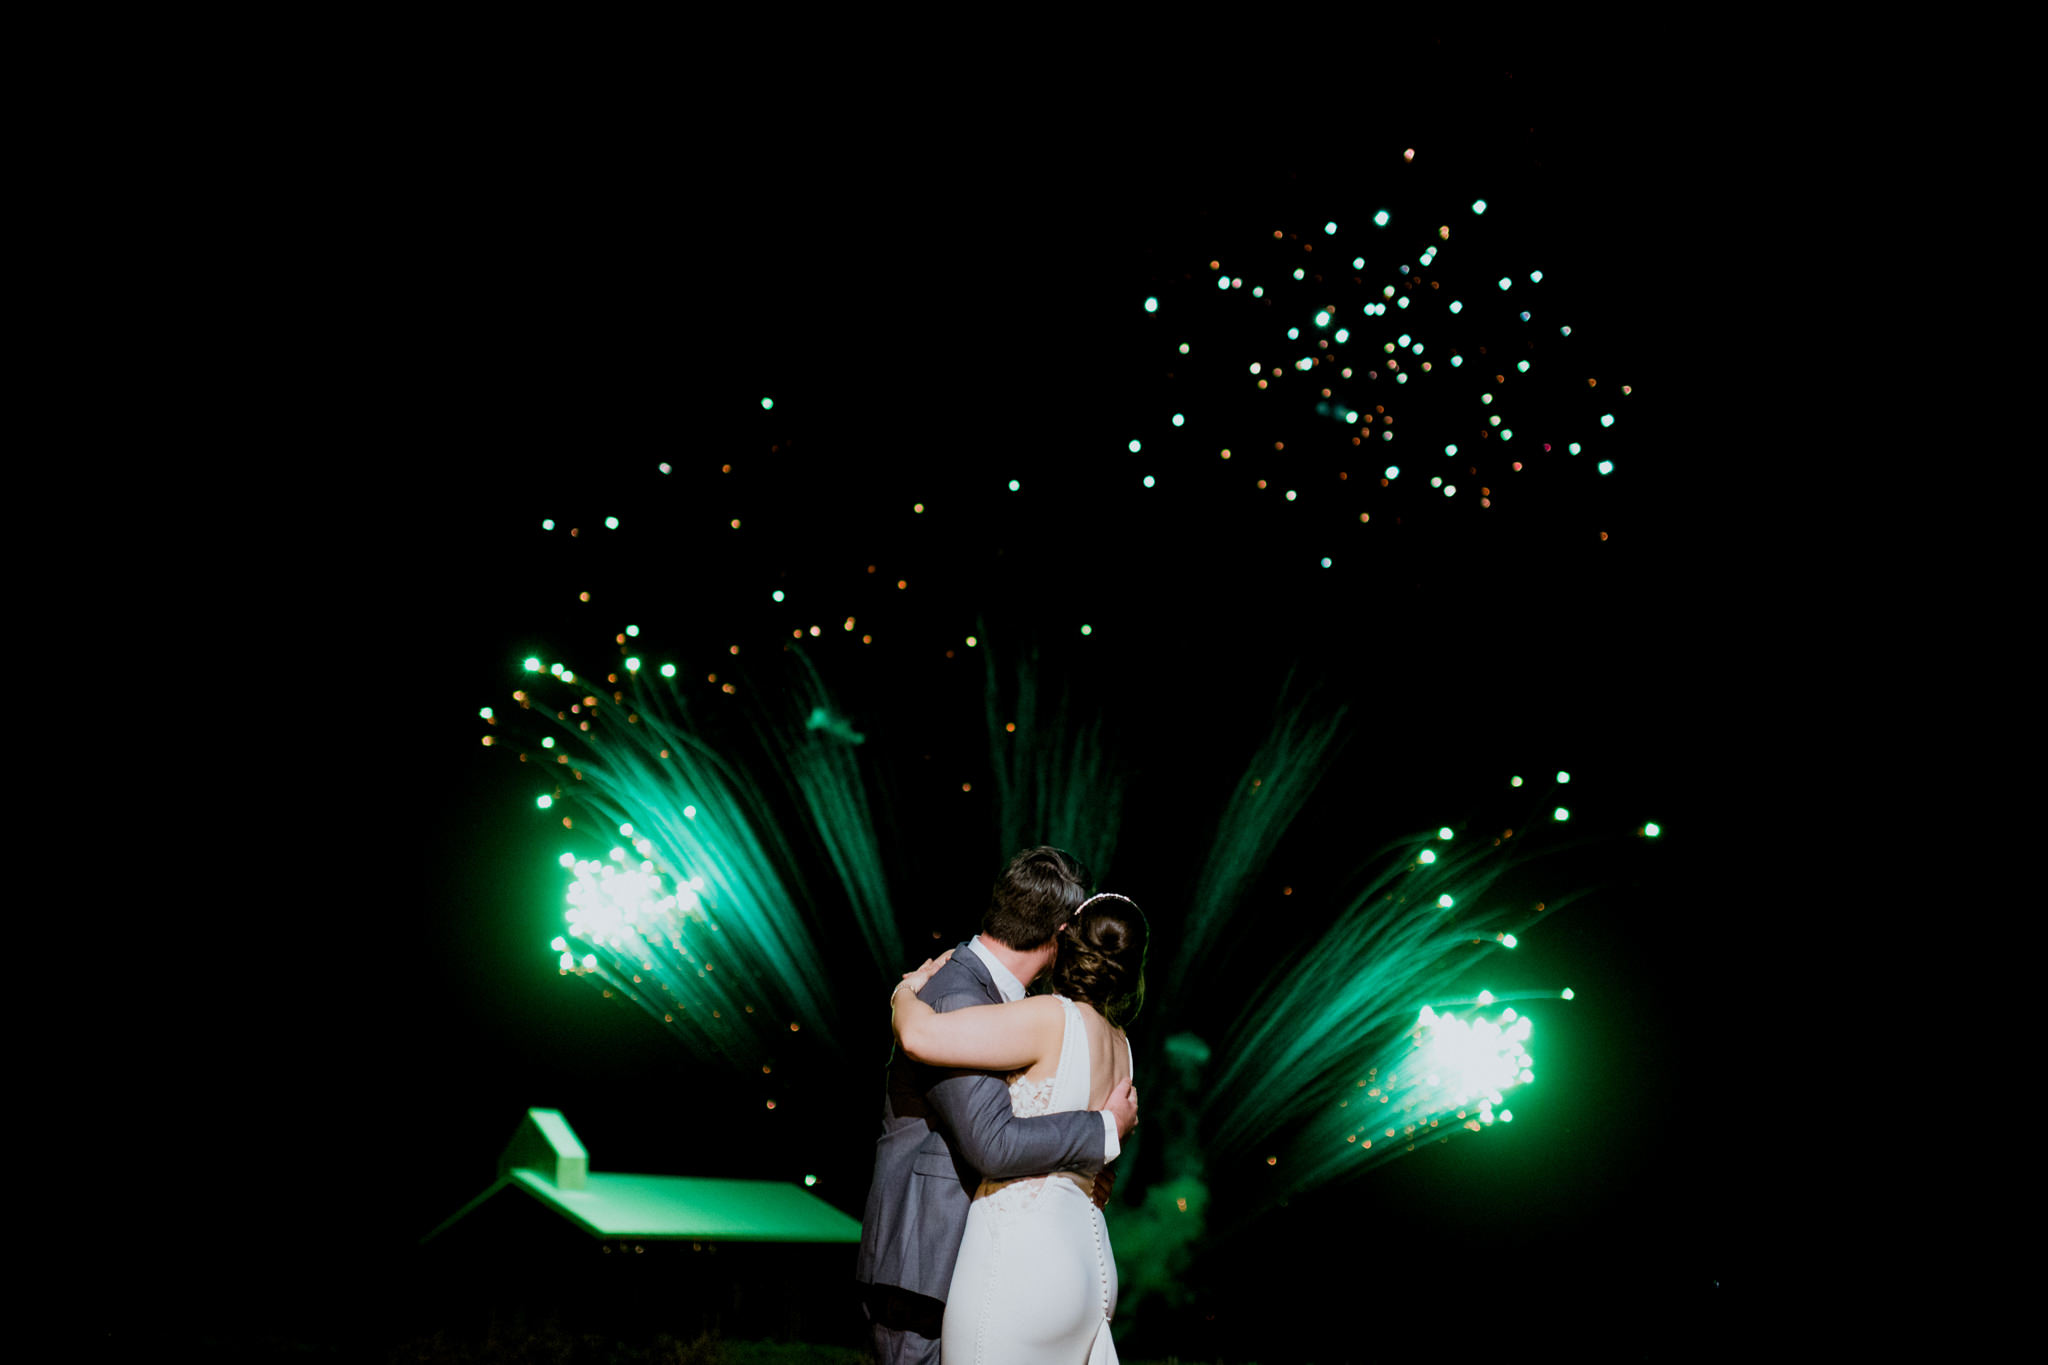 A groom and bride hug together as they watch green fireworks in the background